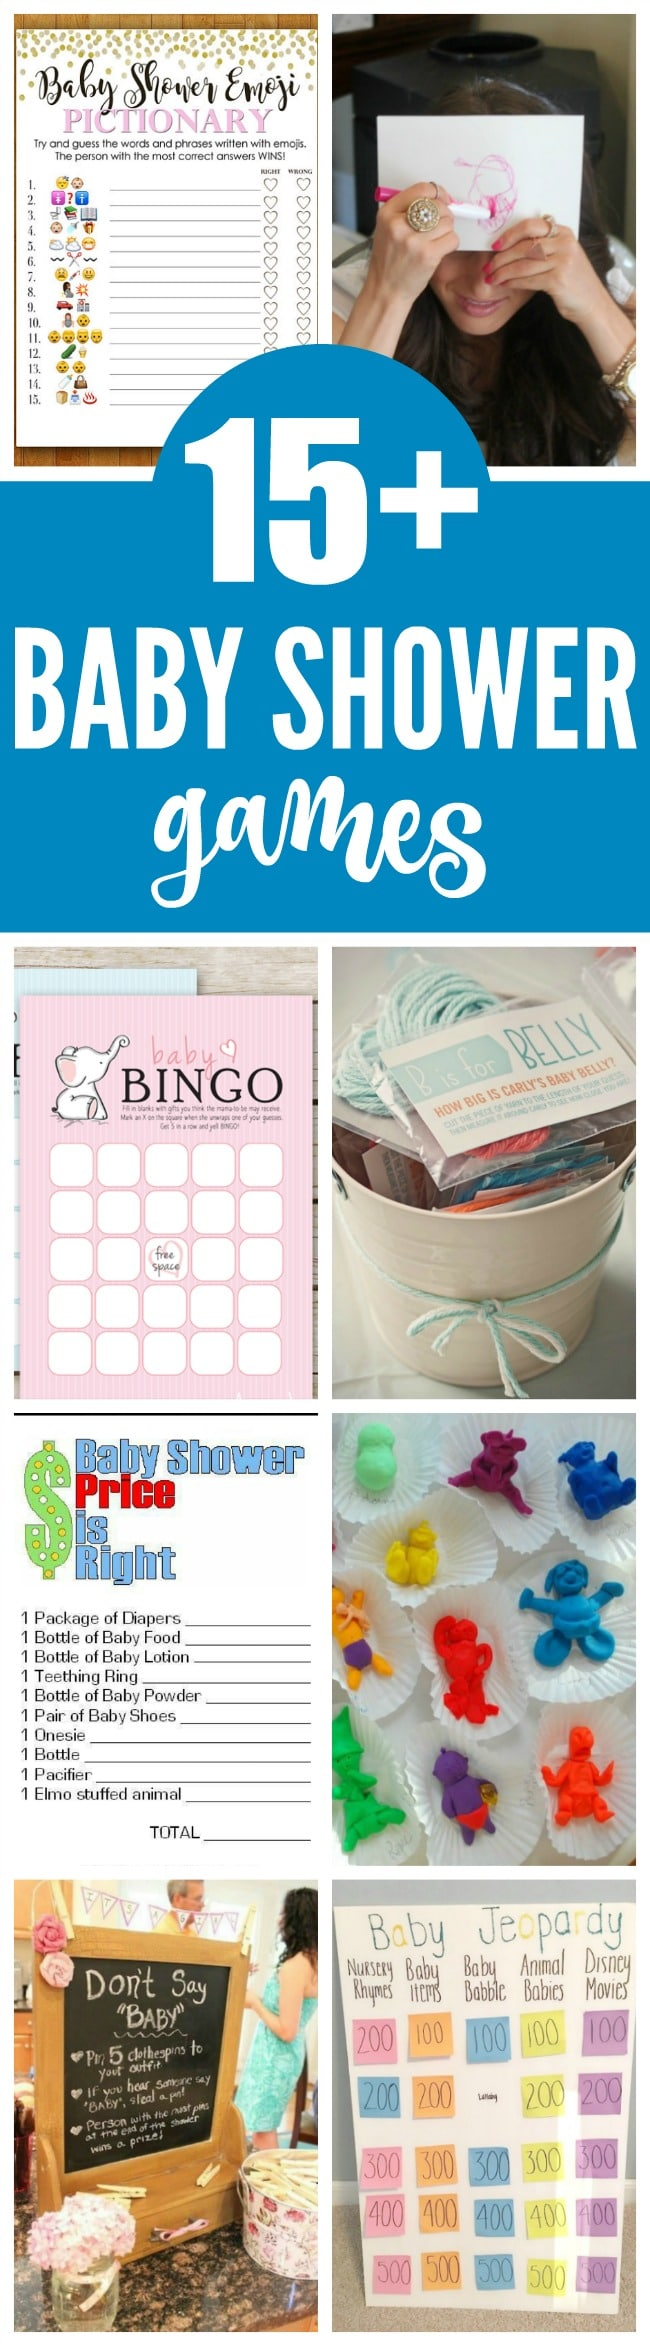 8b3c67f8734 15 Entertaining Baby Shower Games - Pretty My Party - Party Ideas